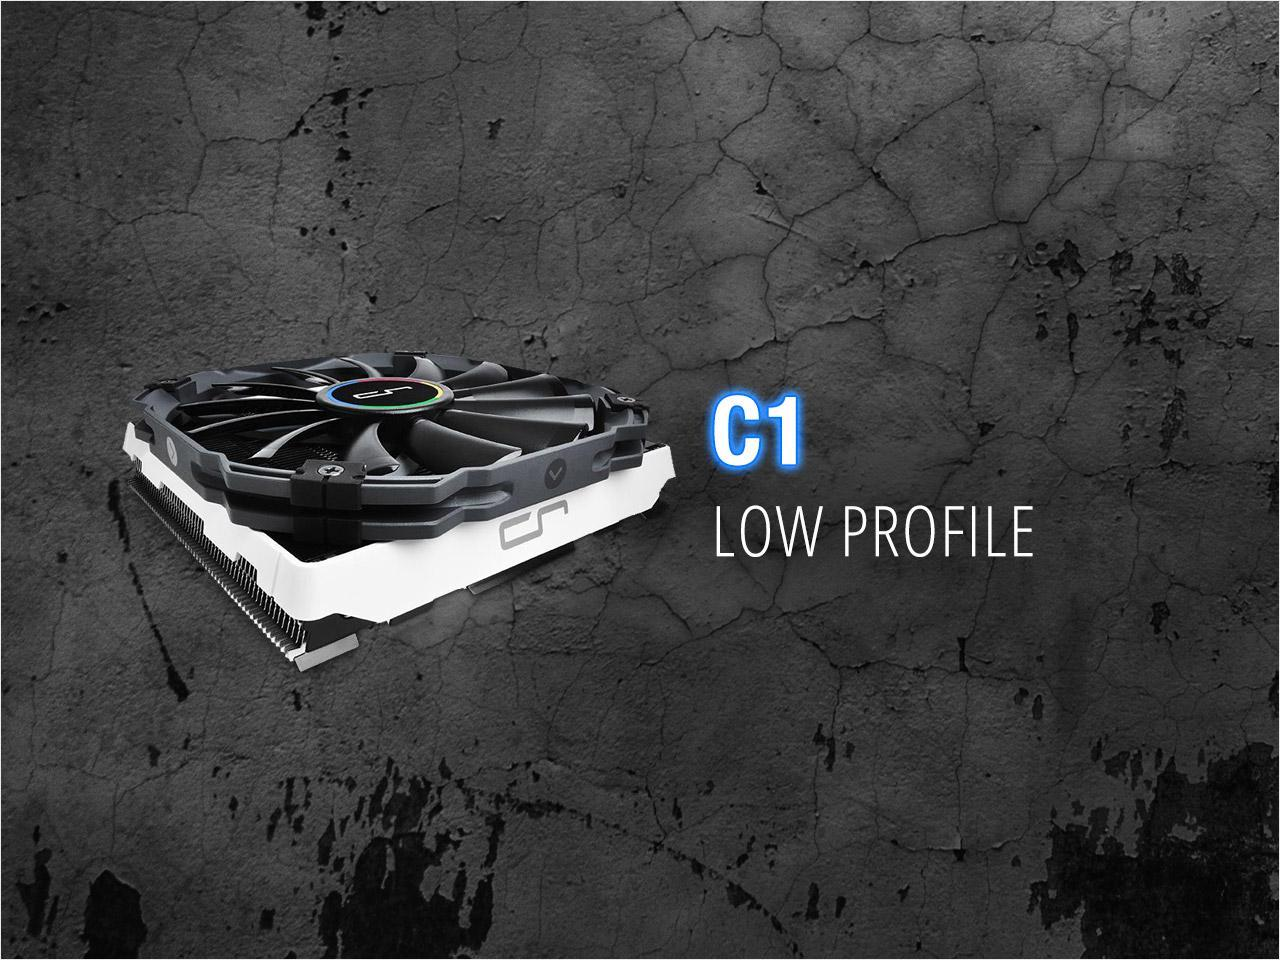 CRYORIG C1 ITX Top Flow Cooler For AMD/Intel CPU